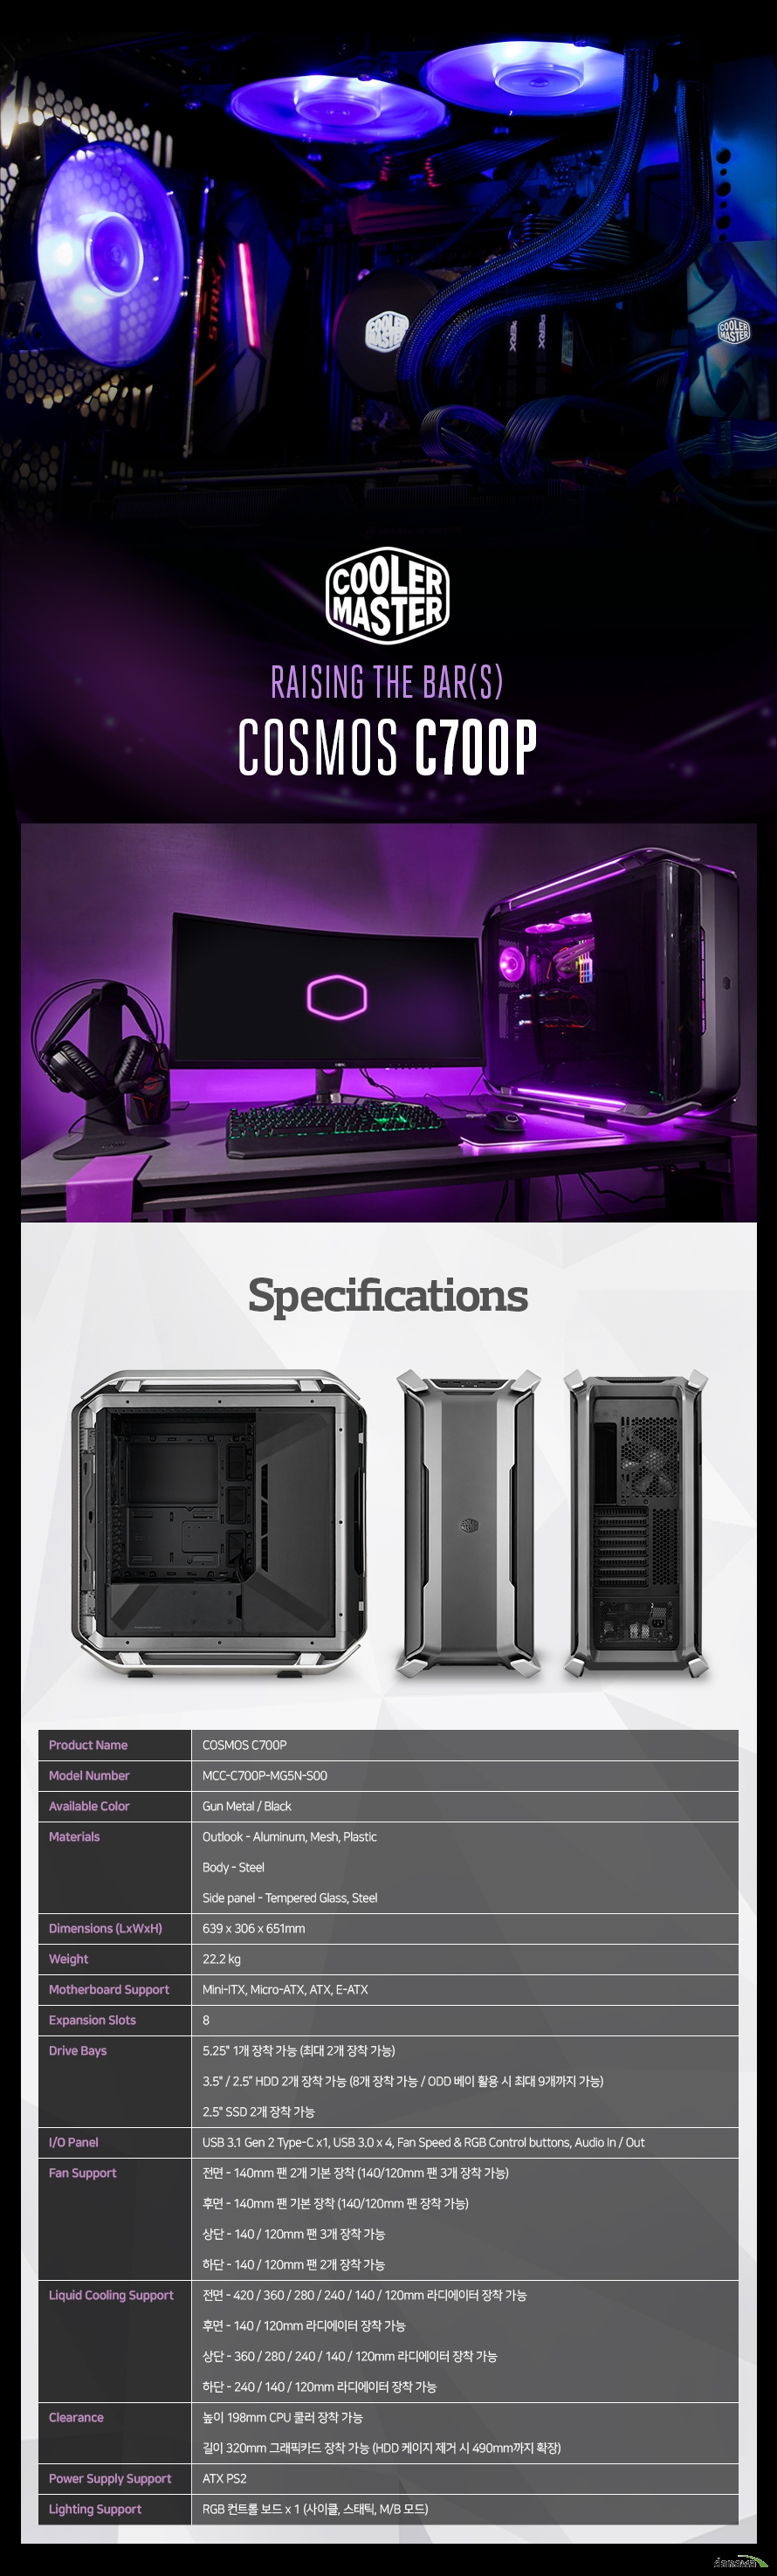 Product Name COSMOS C700PModel Number MCC-C700P-MG5N-S00Available Color Gun Metal / BlackMaterials Outlook - Aluminum, Mesh, Plastic Body - Steel Side panel - Dimensions (LxWxH) 639 x 306 x 651mmWeight 22.2 kgMotherboard Support Mini-ITX, Micro-ATX, ATX, E-ATXExpansion Slots 8Drive Bays 5.25인치 1개 장착 가능 (최대 2개 장착 가능) 3.5인치 / 2.5인치 HDD 2개 장착 가능 (8개 장착 가능 / ODD 베이 활용 시 최대 9개까지 가능) 2.5인치 SSD 3개 장착 가능I/O Panel USB 3.1 Gen 2 Type-C x1, USB 3.0 x 4, Fan Speed & RGB Control buttons, Audio In / OutFan Support 전면 - 140mm 팬 2개 기본 장착 (140/120mm 팬 3개 장착 가능) 후면 - 140mm 팬 기본 장착 (140/120mm 팬 장착 가능) 상단 - 140 / 120mm 팬 3개 장착 가능 하단 - 140 / 120mm 팬 2개 장착 가능Liquid Cooling Support 전면 - 420 / 360 / 280 / 240 / 140 / 120mm 라디에이터 장착 가능 후면 - 140 / 120mm 라디에이터 장착 가능 상단 - 360 / 280 / 240 / 140 / 120mm 라디에이터 장착 가능 하단 - 240 / 140 / 120mm 라디에이터 장착 가능Clearance 높이 198mm CPU 쿨러 장착 가능 길이 320mm 그래픽카드 장착 가능 (HDD 케이지 제거 시 490mm까지 확장)Power Supply Support ATX PS2Lighting Support RGB 컨트롤 보드 x 1 (사이클, 스태틱, M/B 모드)